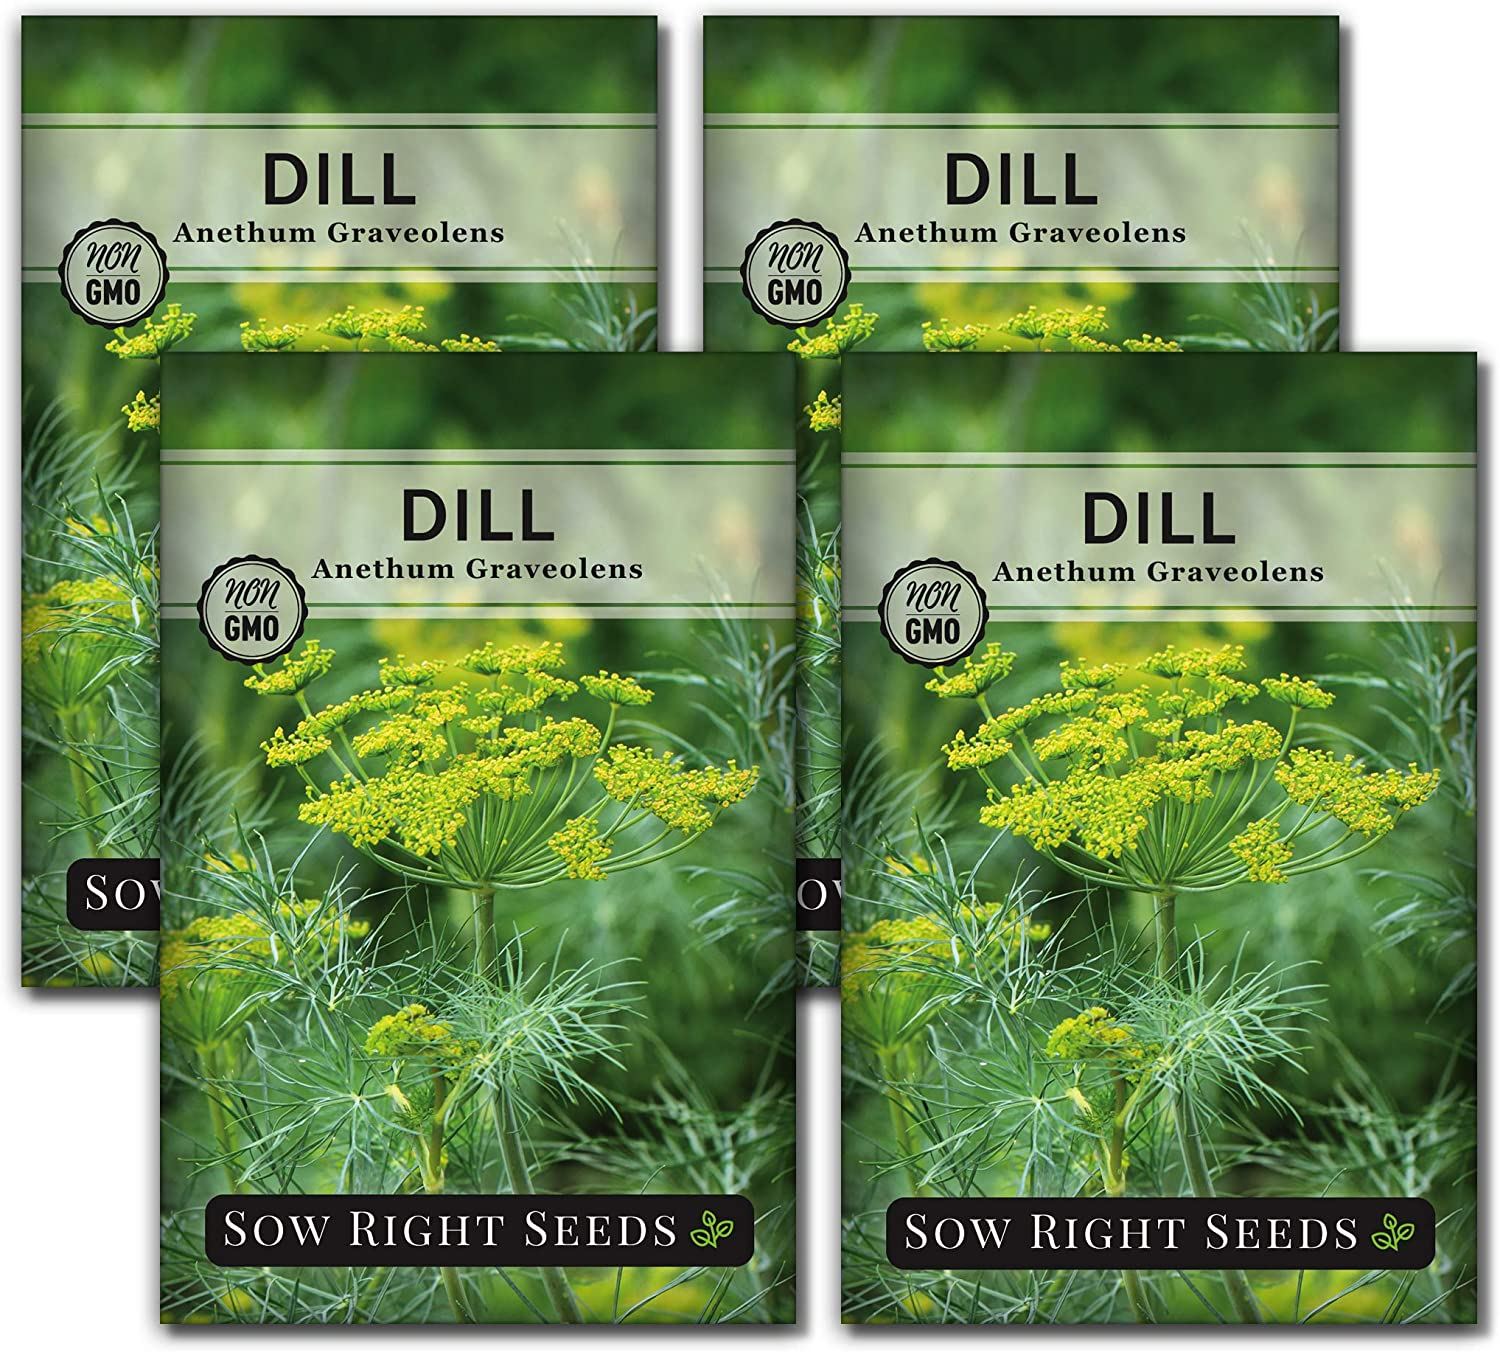 Sow Right Seeds - Dill Seed for Planting - All Non-GMO Heirloom Dill Seeds with Full Instructions for Easy Planting and Growing Your Kitchen Herb Garden, Indoor or Outdoor; Great Gift (4 Packets)